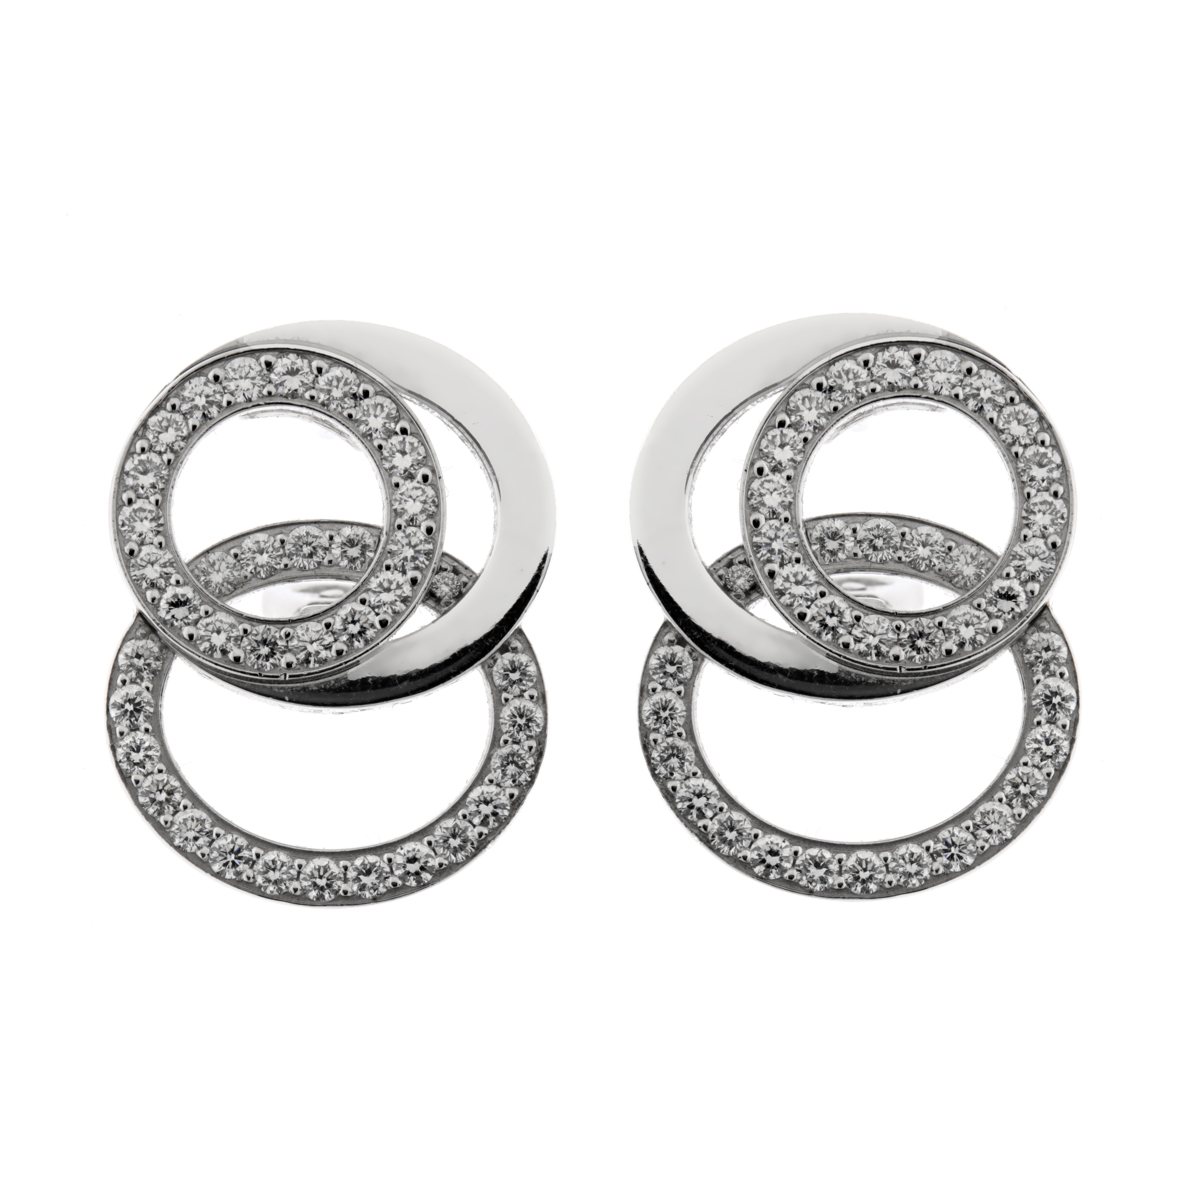 Audemars Piguet Millenary Diamond 18k White Gold Earrings - Audemars Piguet Jewelry